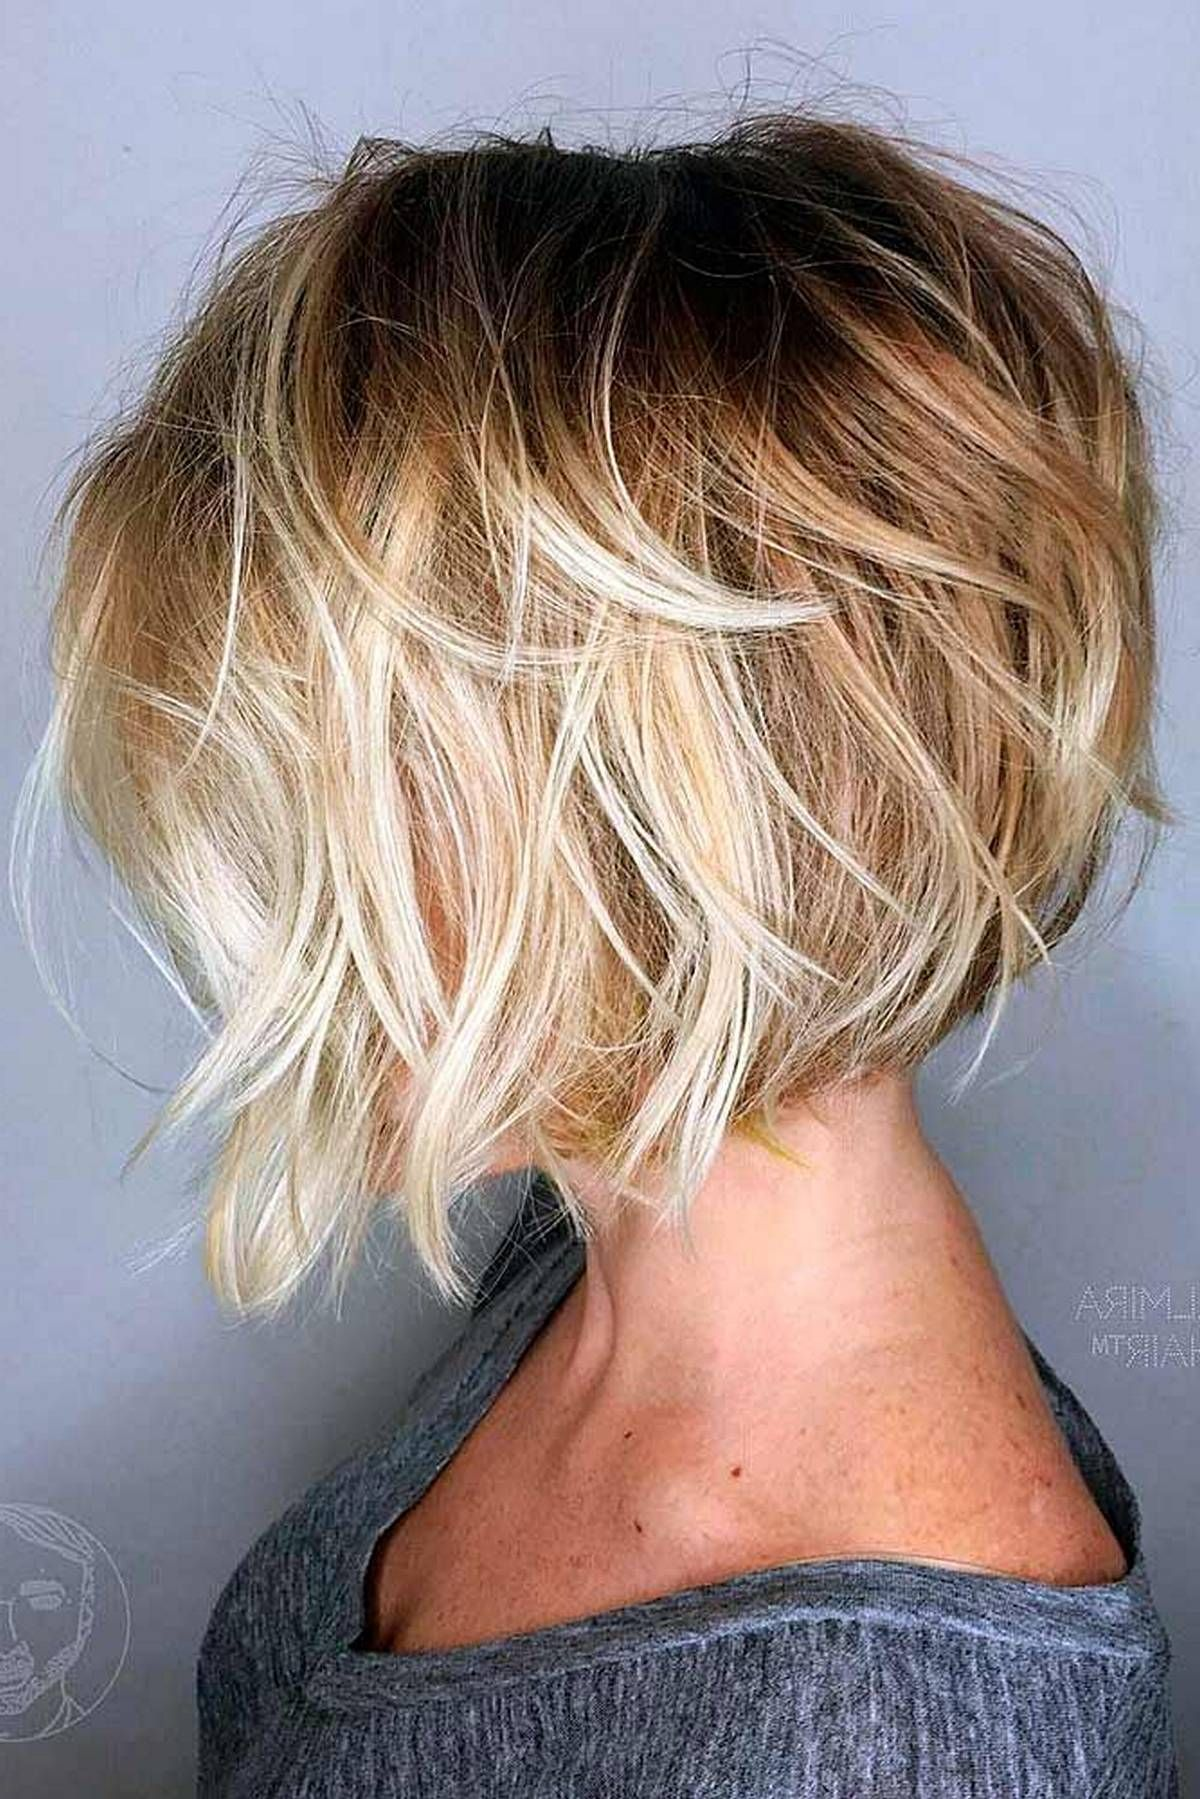 210 Hairstyles Diy And Tutorial For All Hair Lengths Pinterest